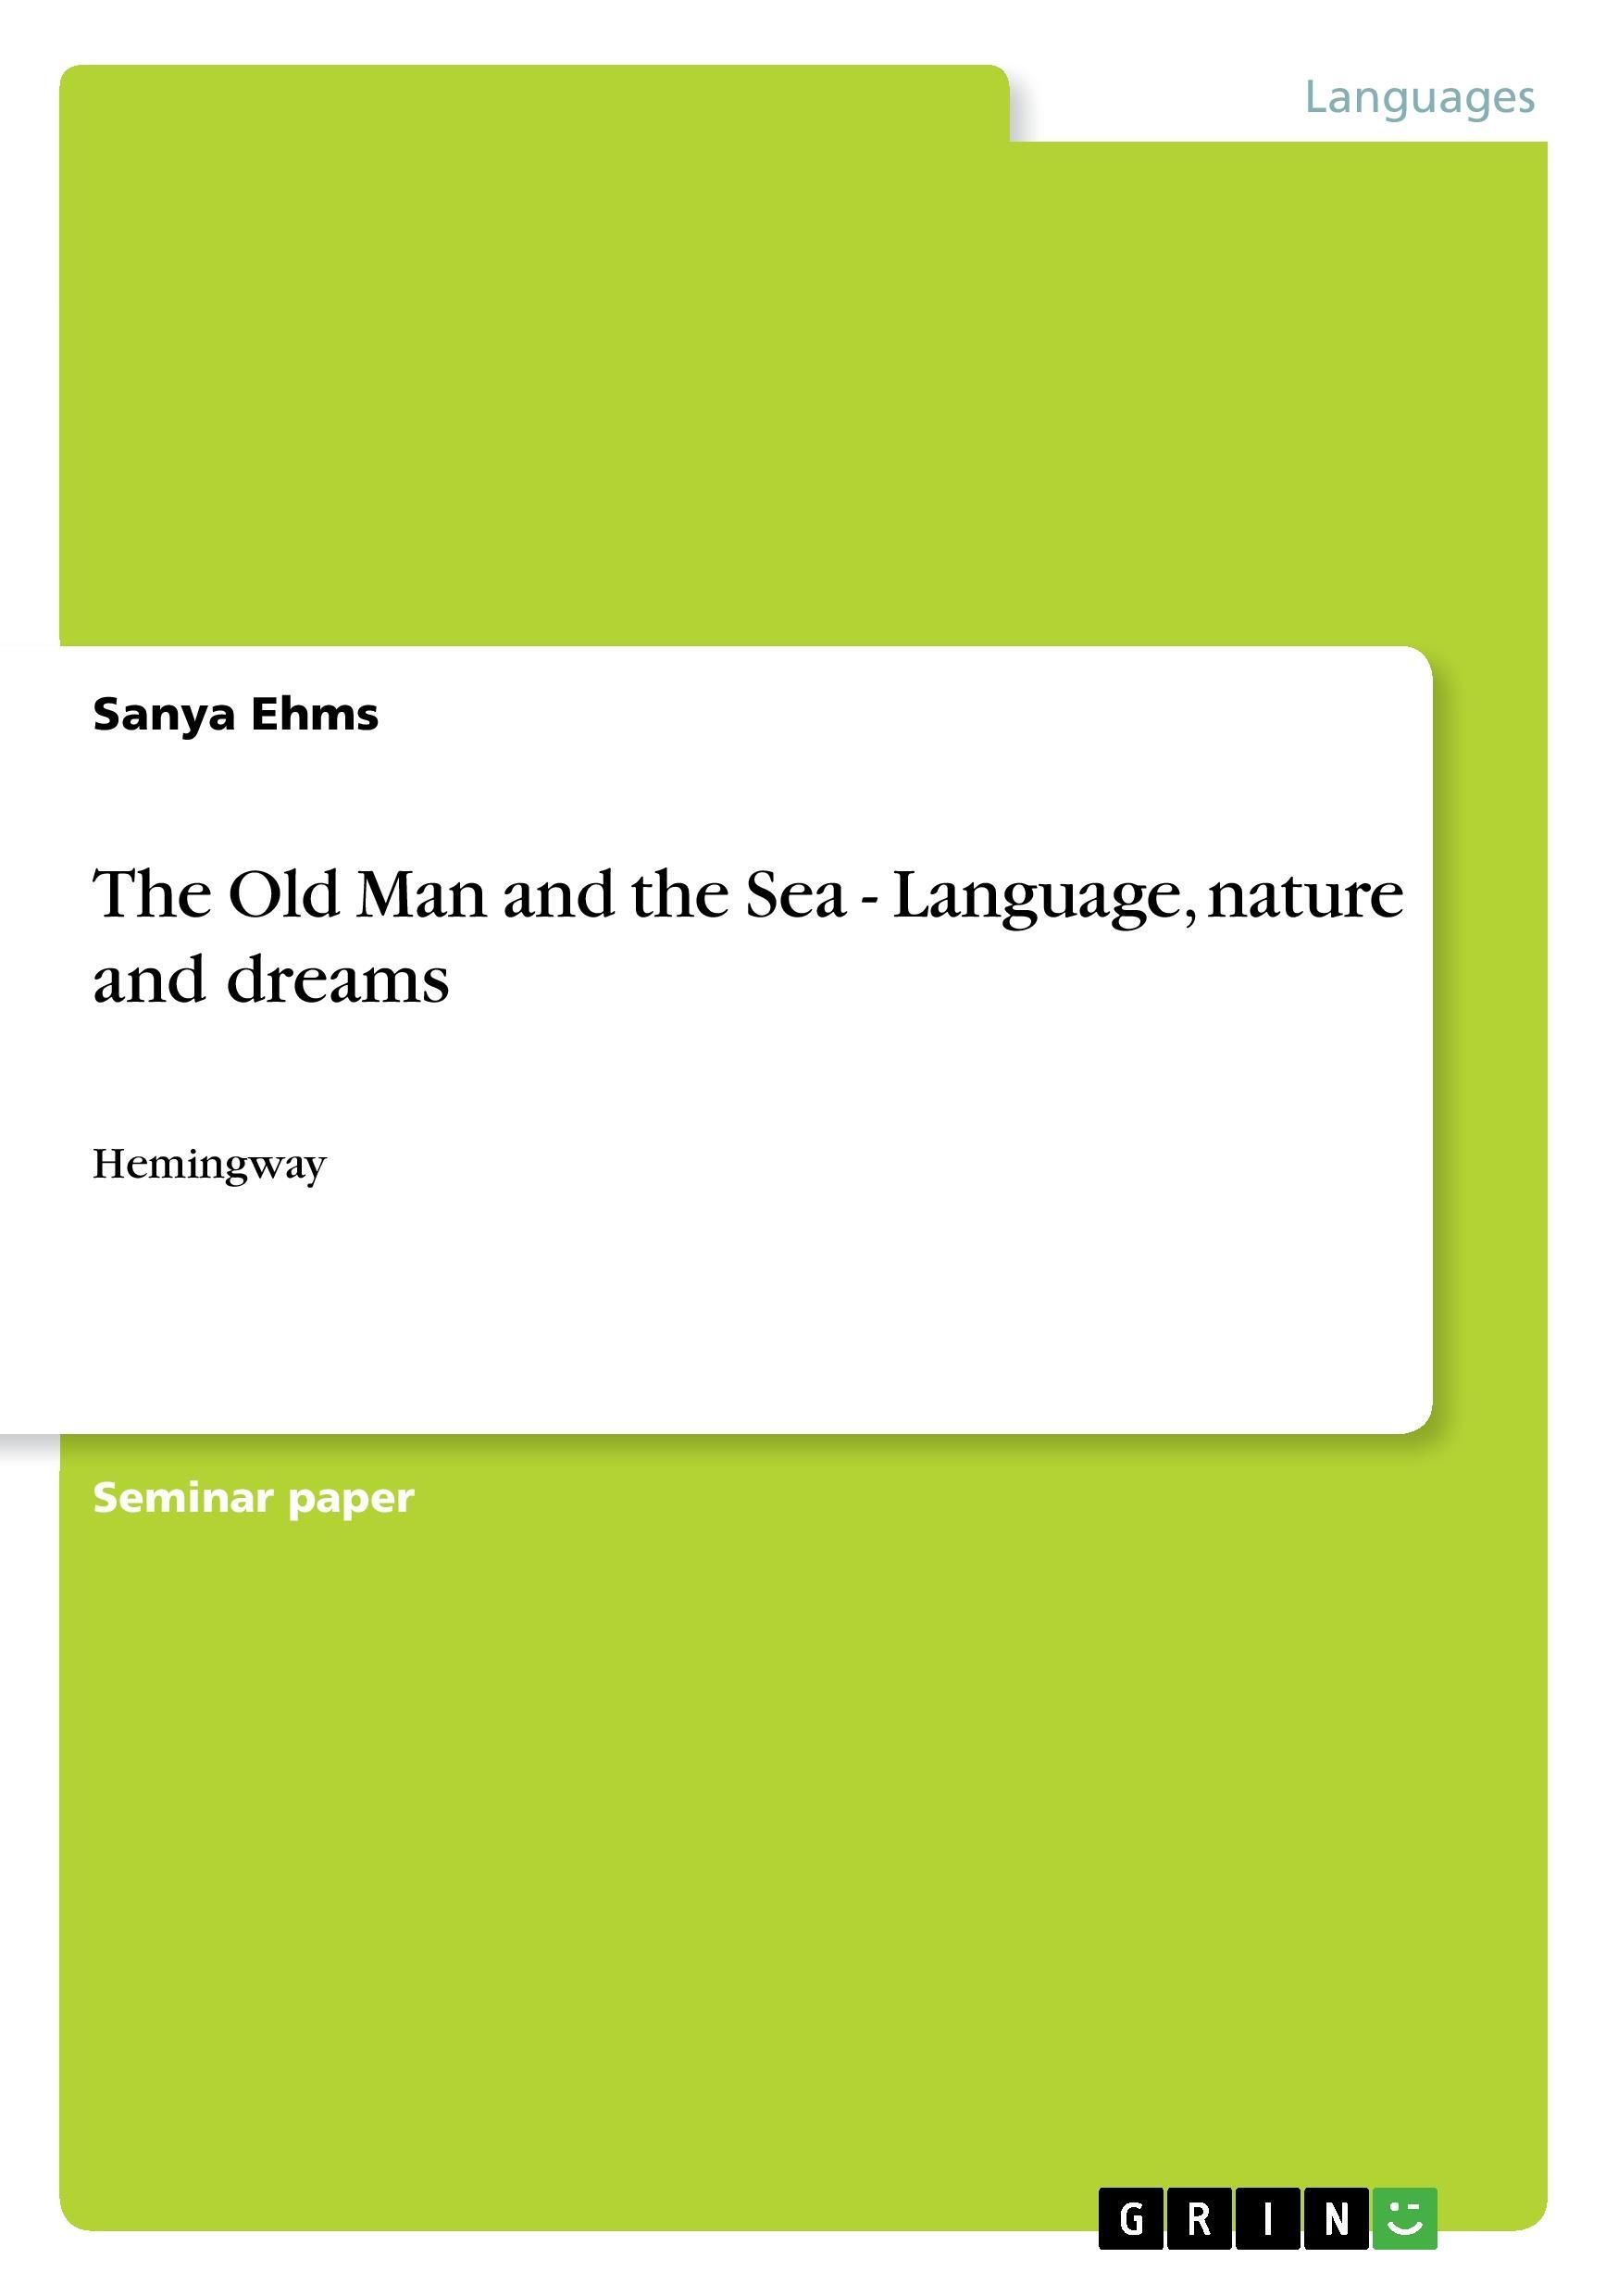 The Old Man and the Sea - Language, nature and dreams - Ehms, Sanya